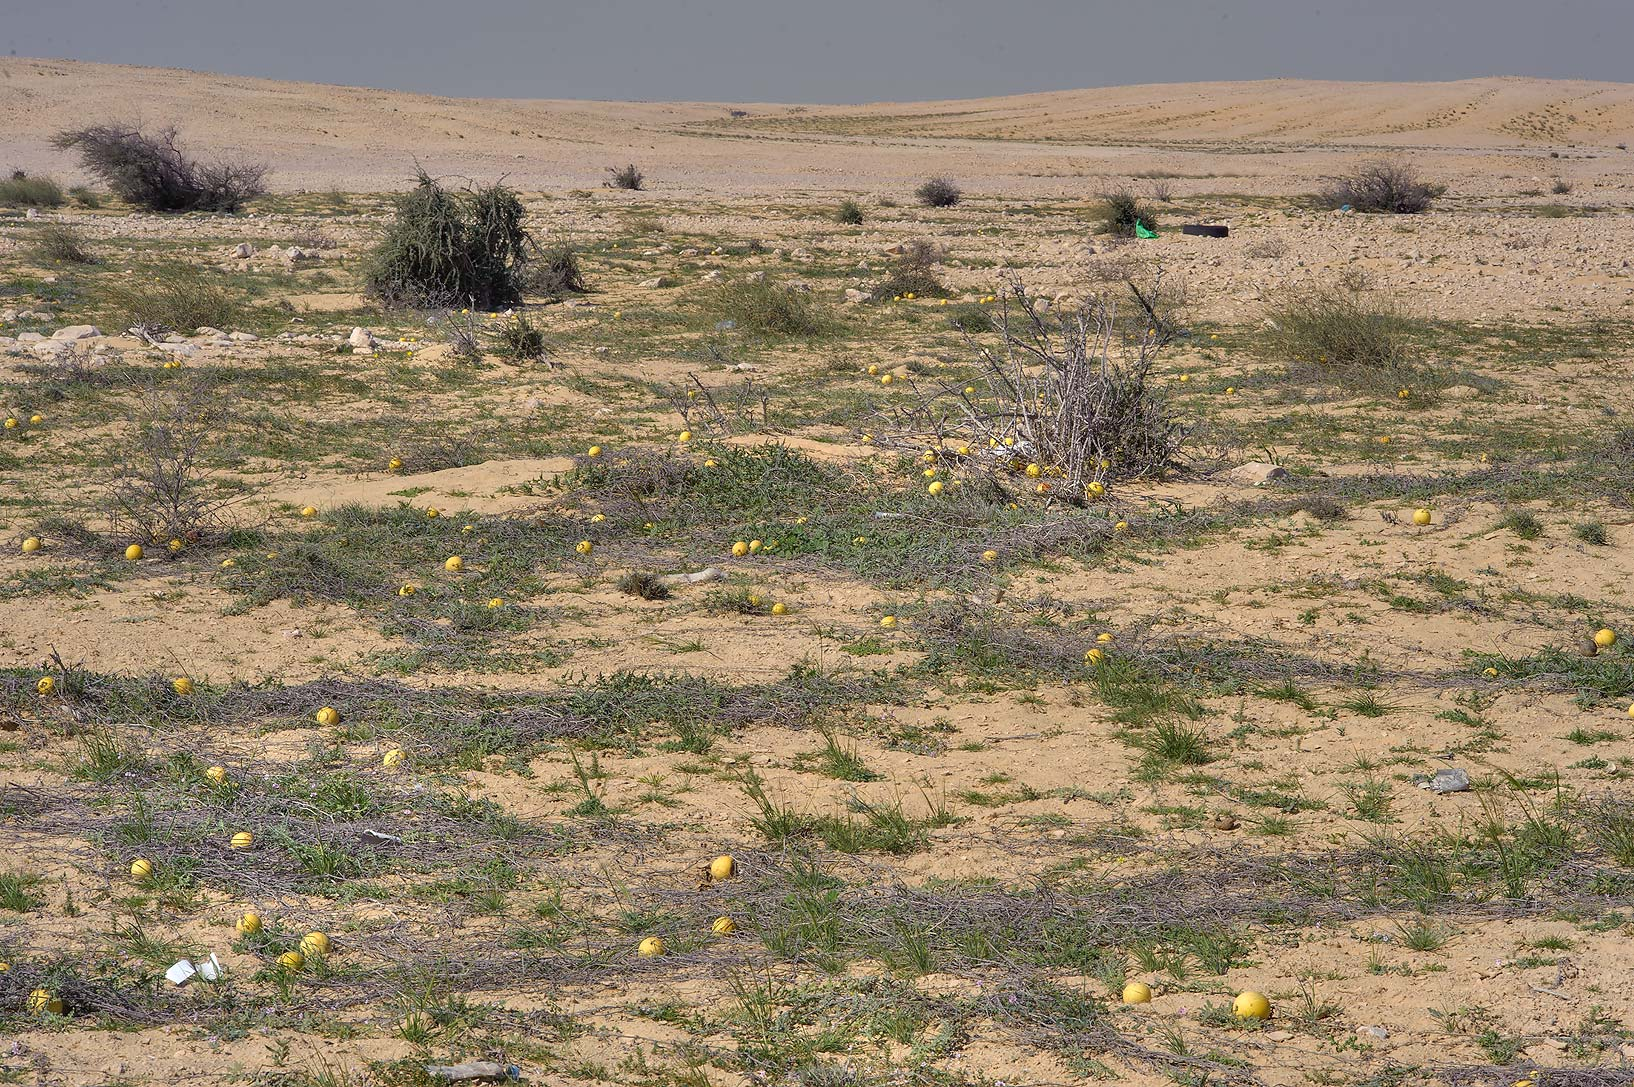 Field of desert watermellons Citrullus...to Sawda Natheel in southern Qatar